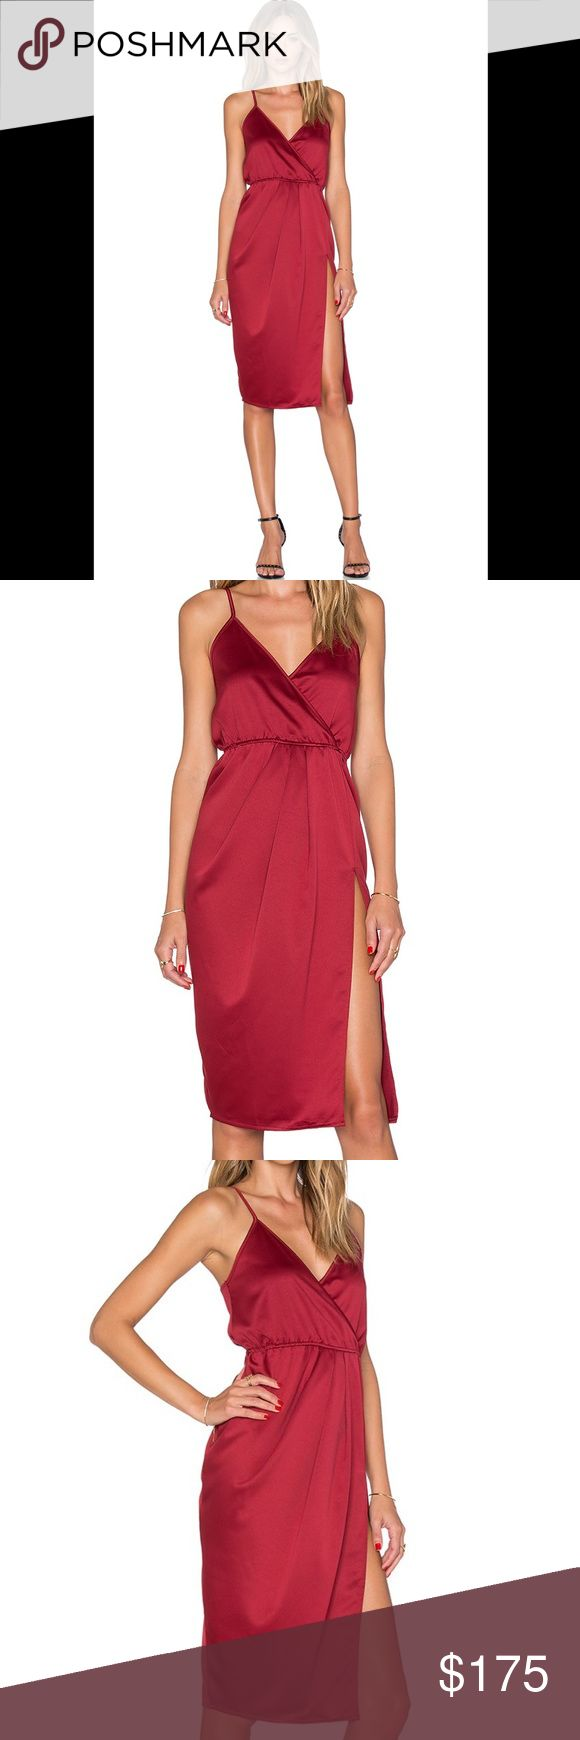 "Toby Heart Ginger x Love Indie Scarlett Dress Revolve Exclusive x Toby Heart Ginger x Love Indie Scarlett Dress in Red. Deep red color, elastic waist, side seam slit, adjustable straps. BNWT. Excellent condition. Sold out online. Approx 38"" long. REVOLVE Dresses"